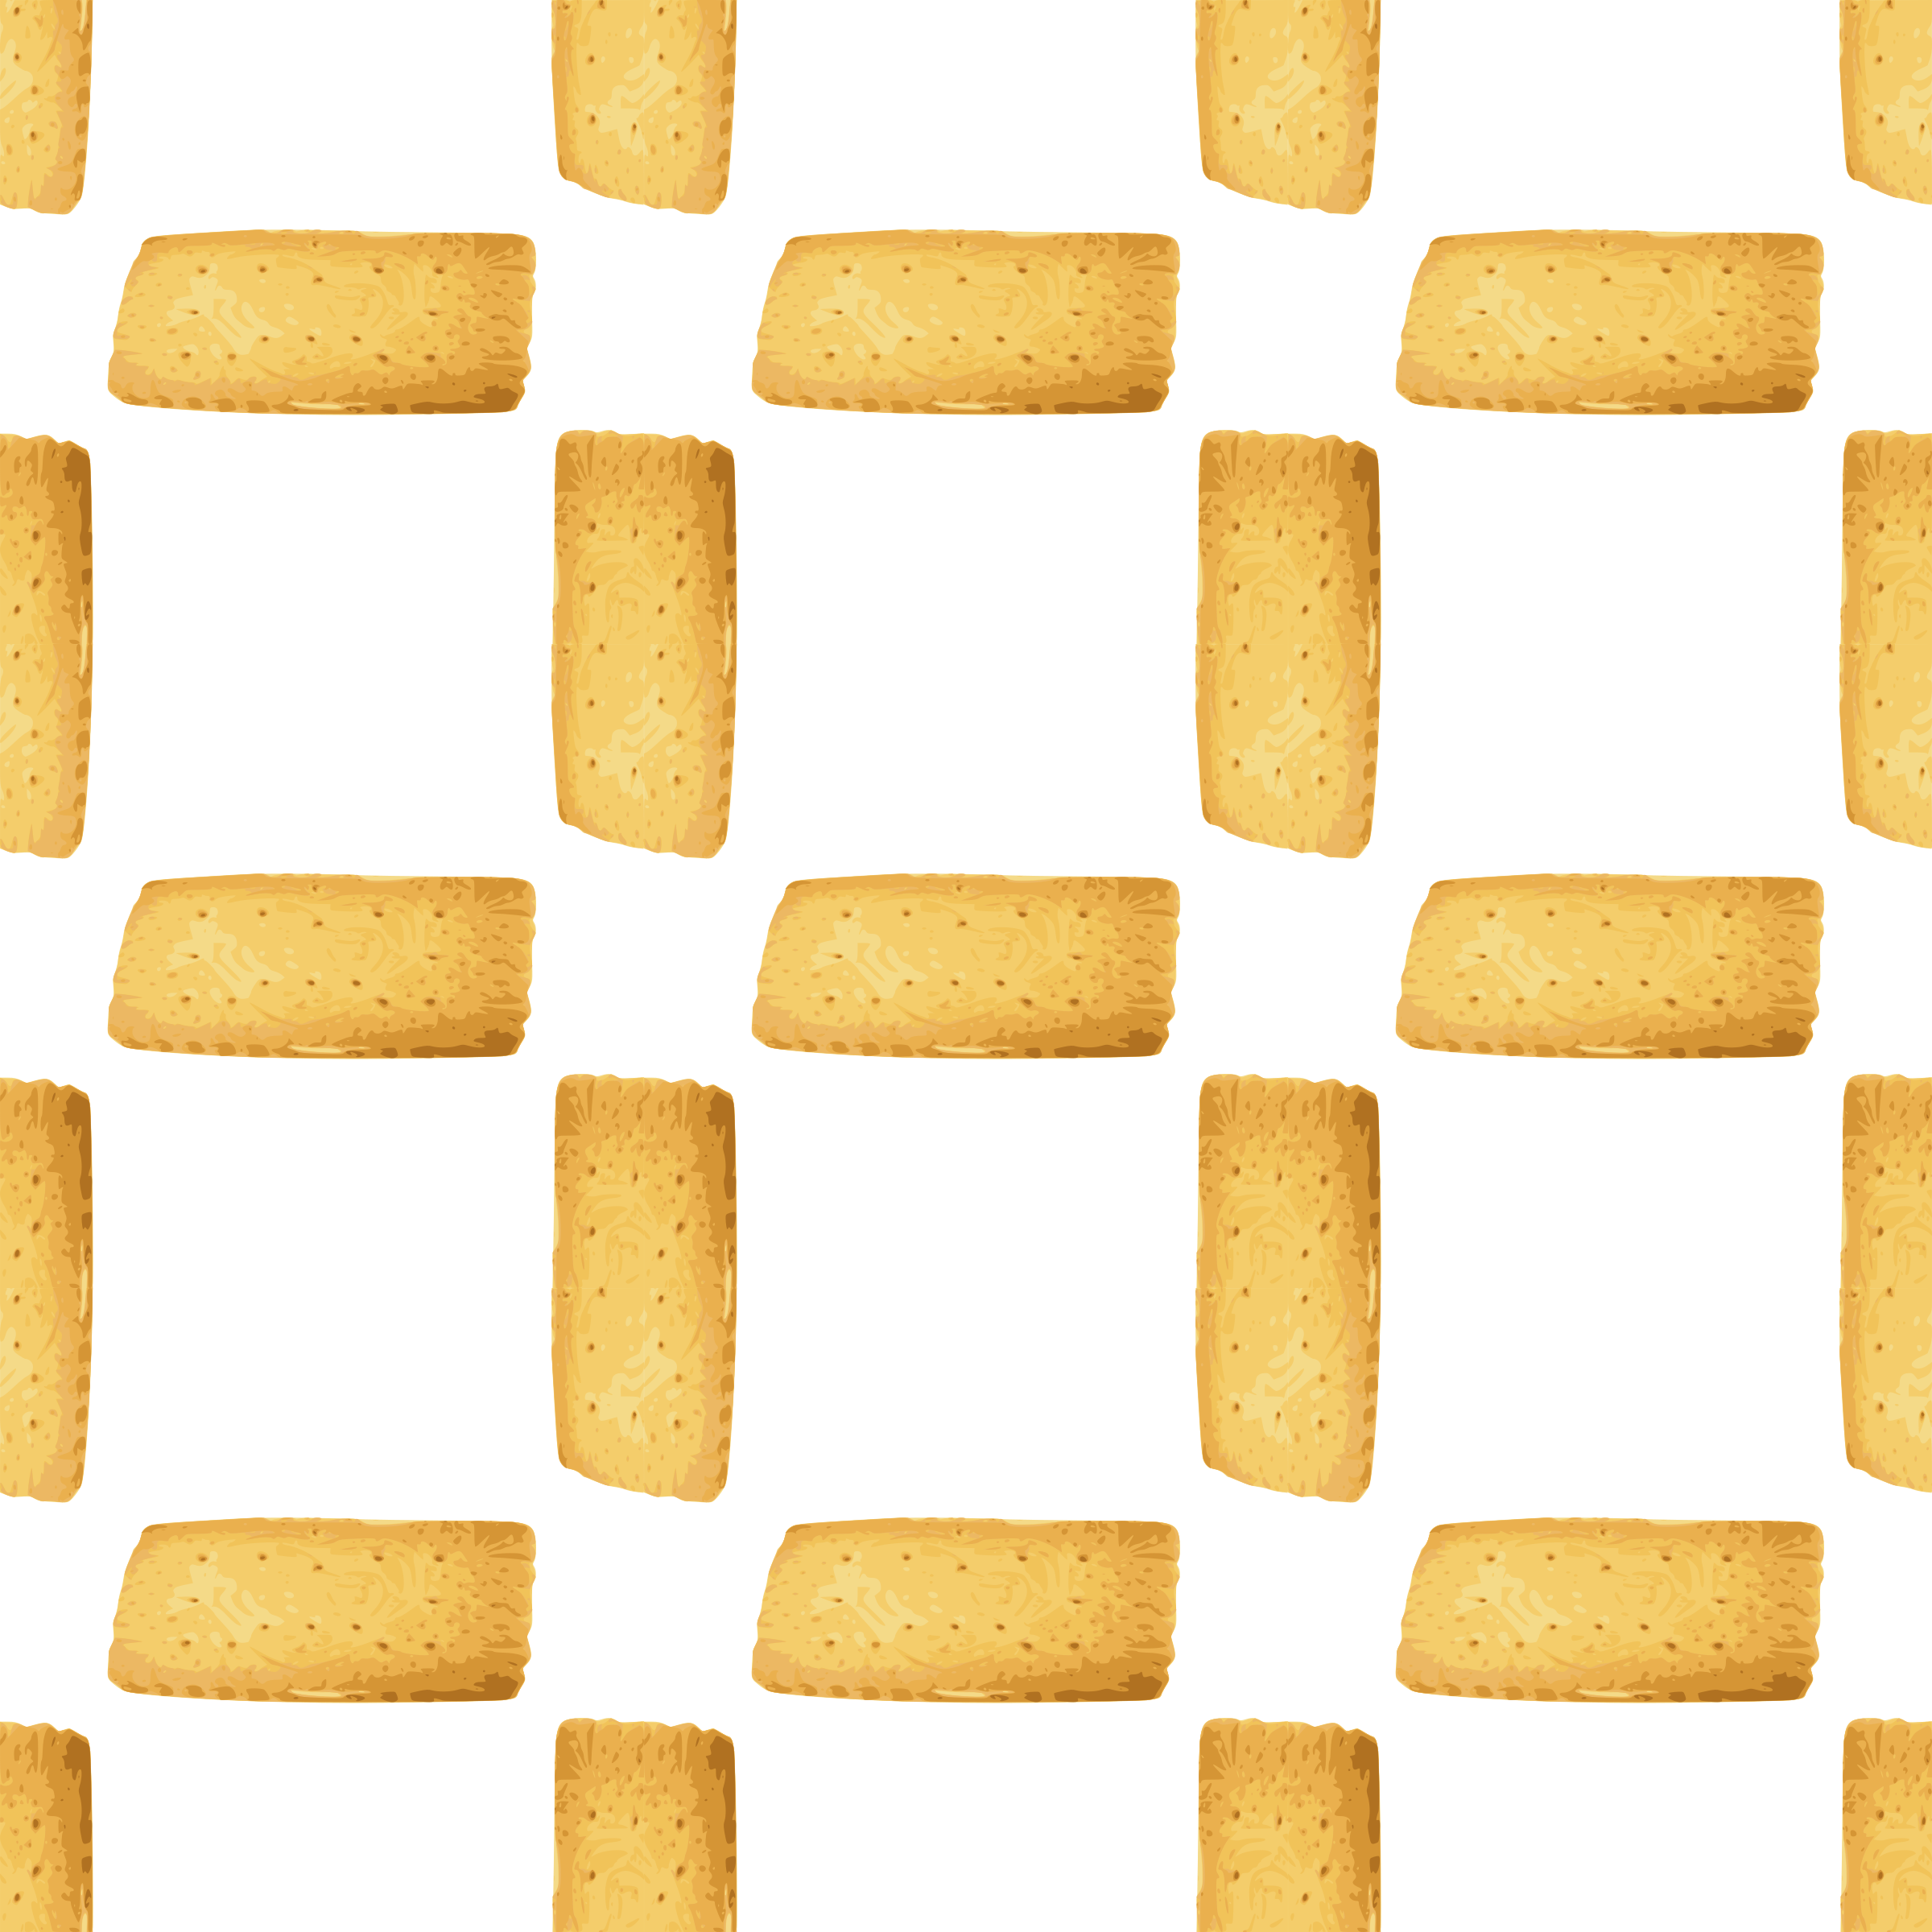 Biscuit-seamless pattern by yamachem